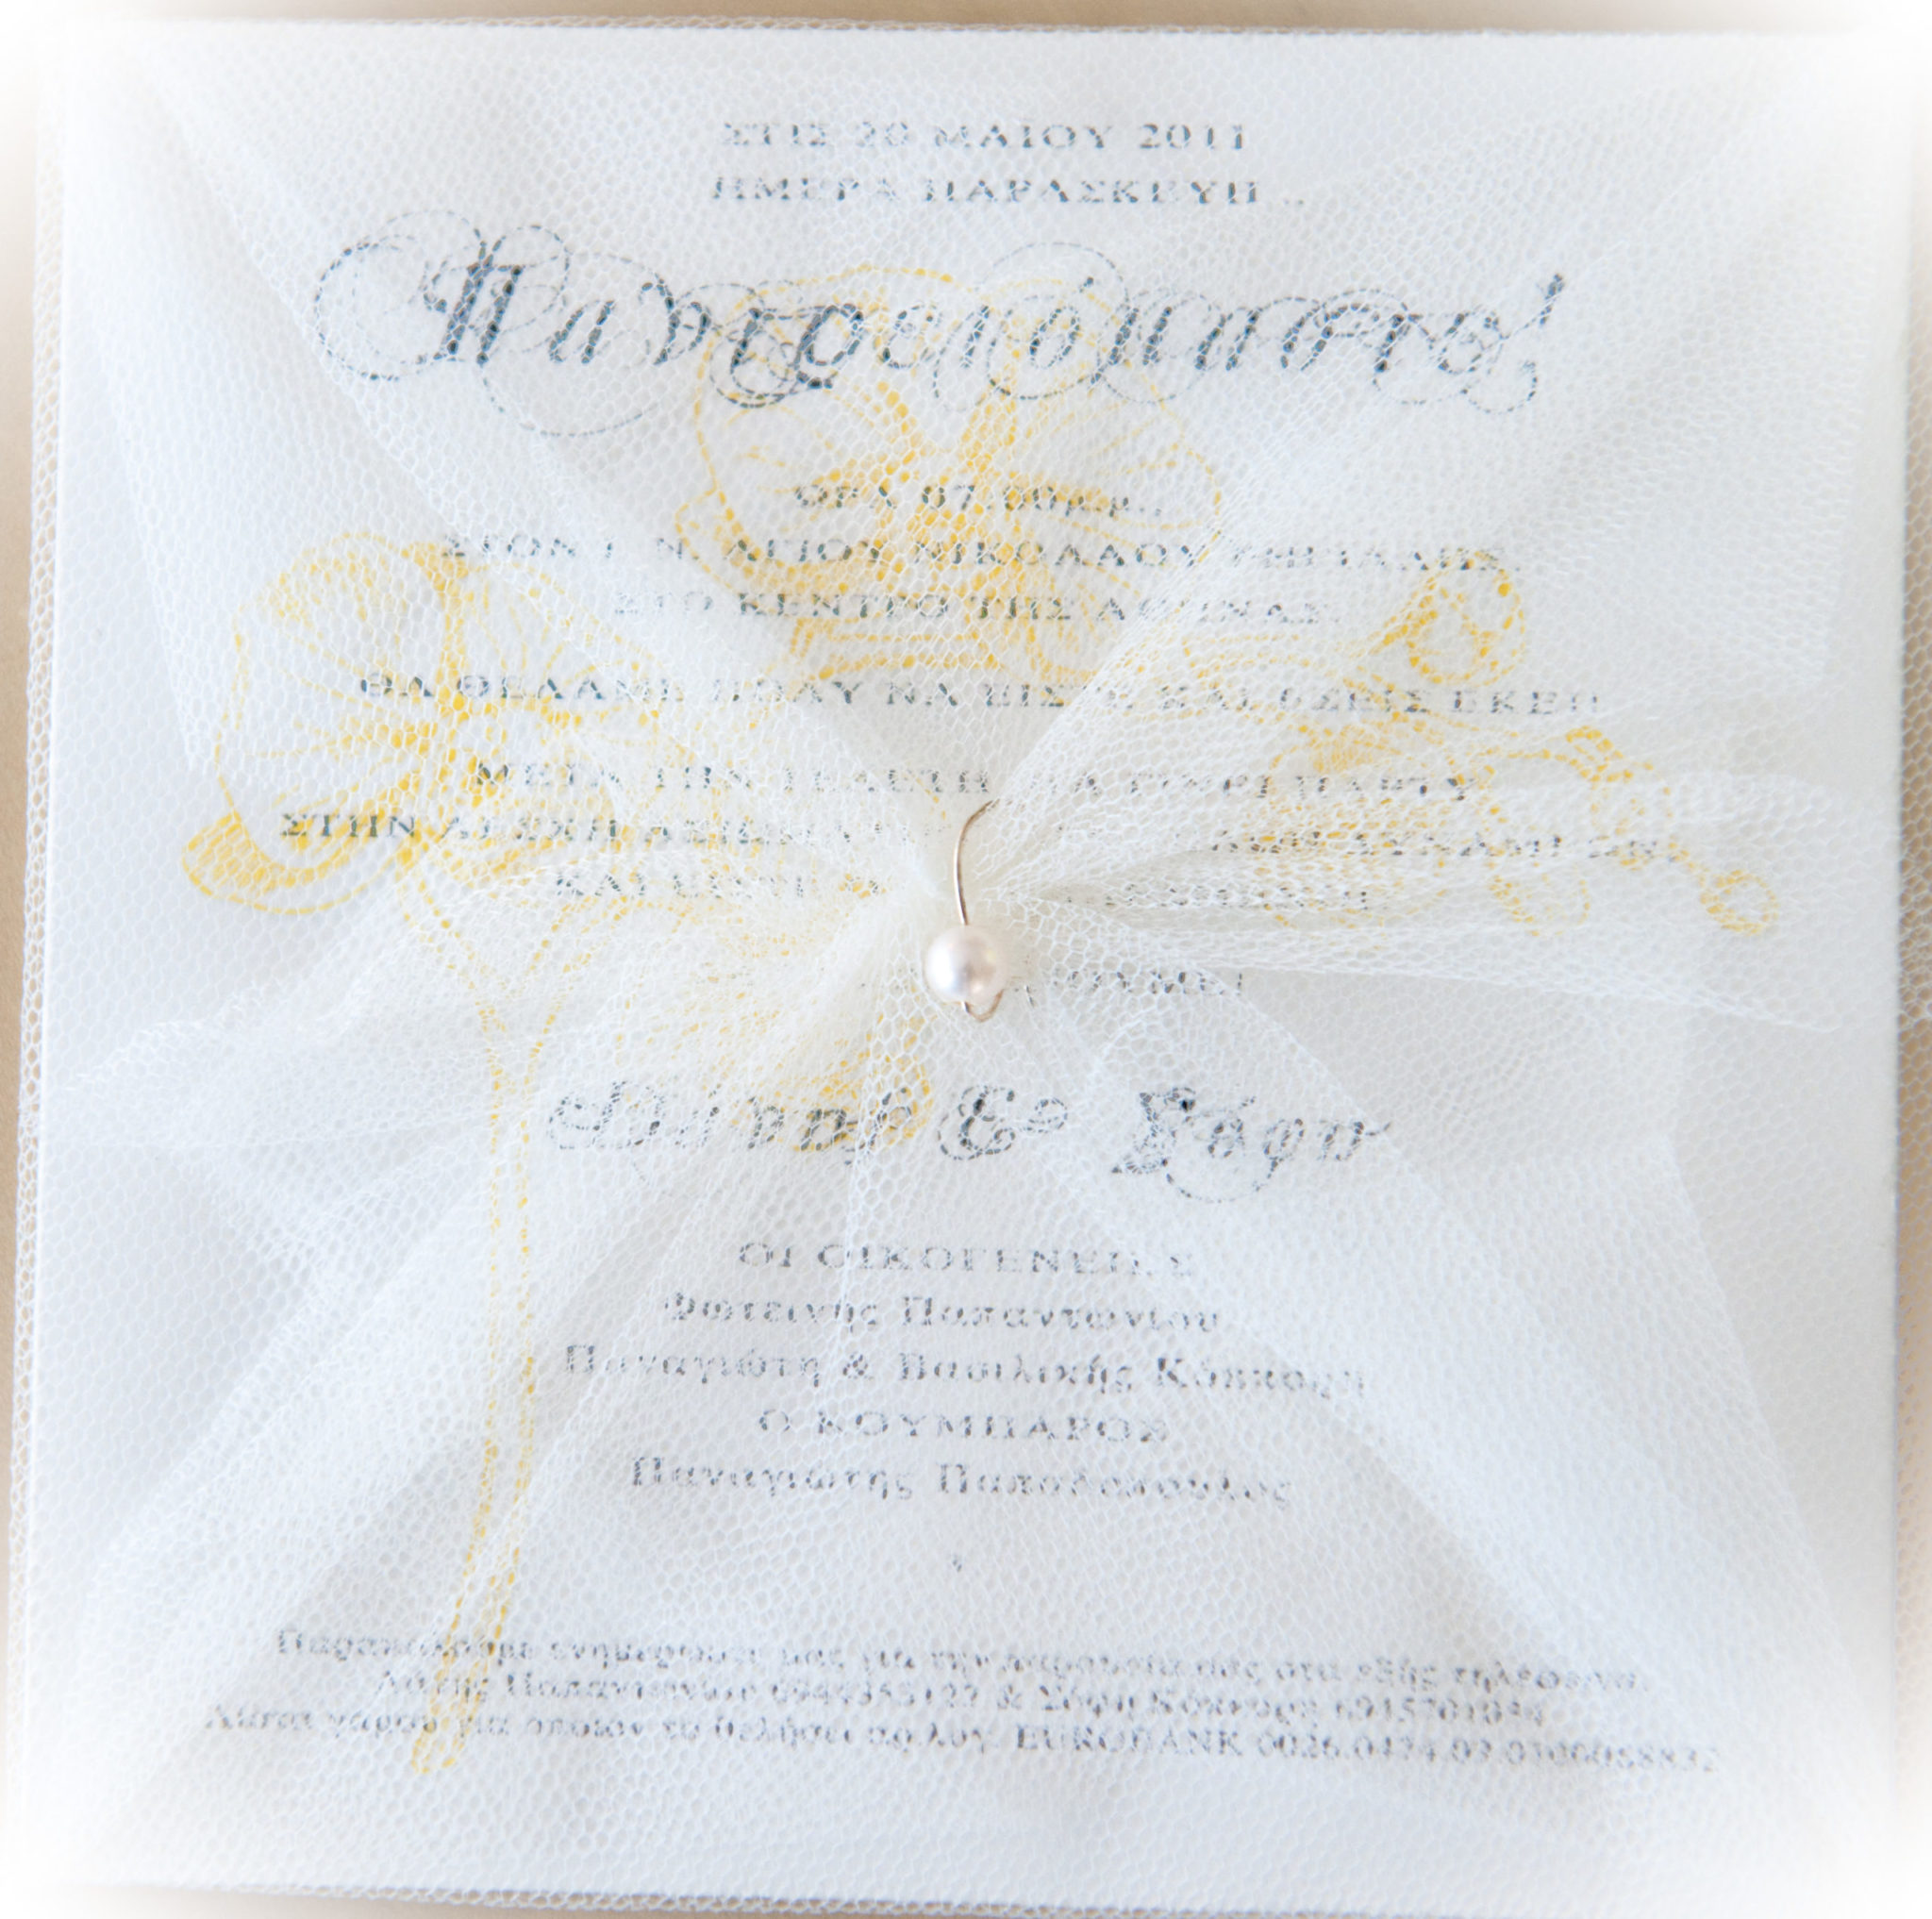 Orchid-wedding invitation